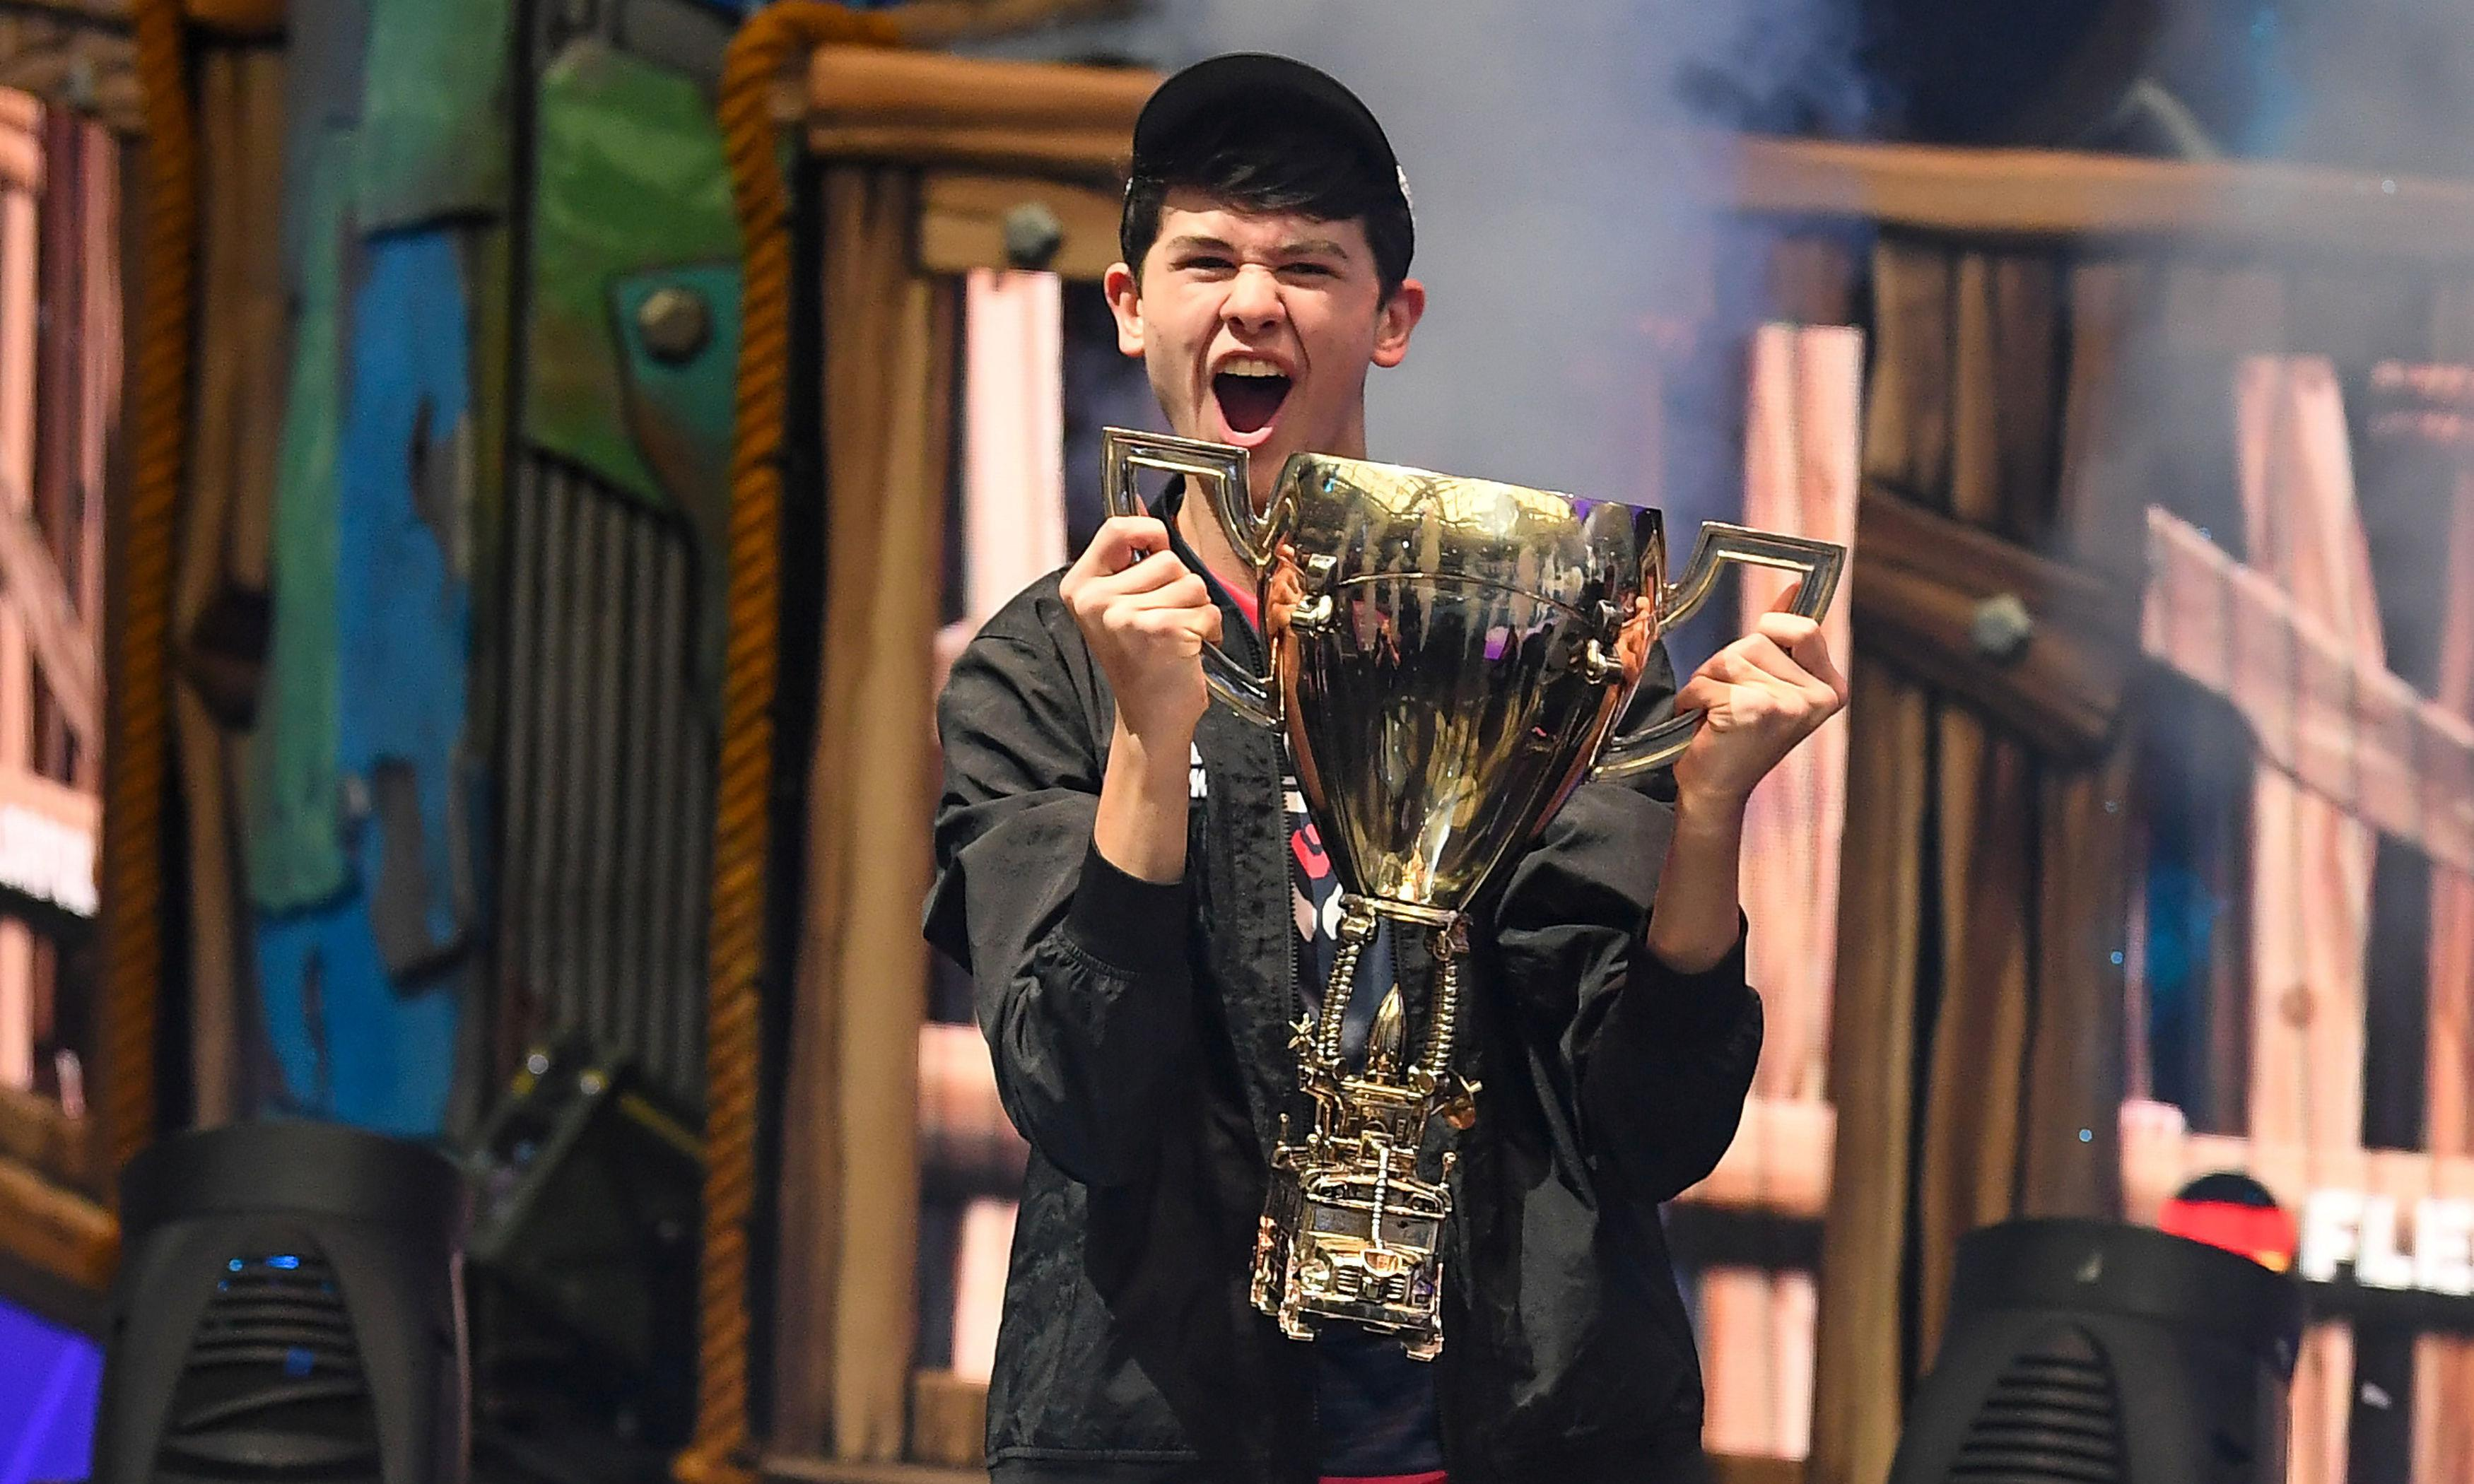 'They came in with guns': Fortnite world champion Bugha 'swatted' during livestream